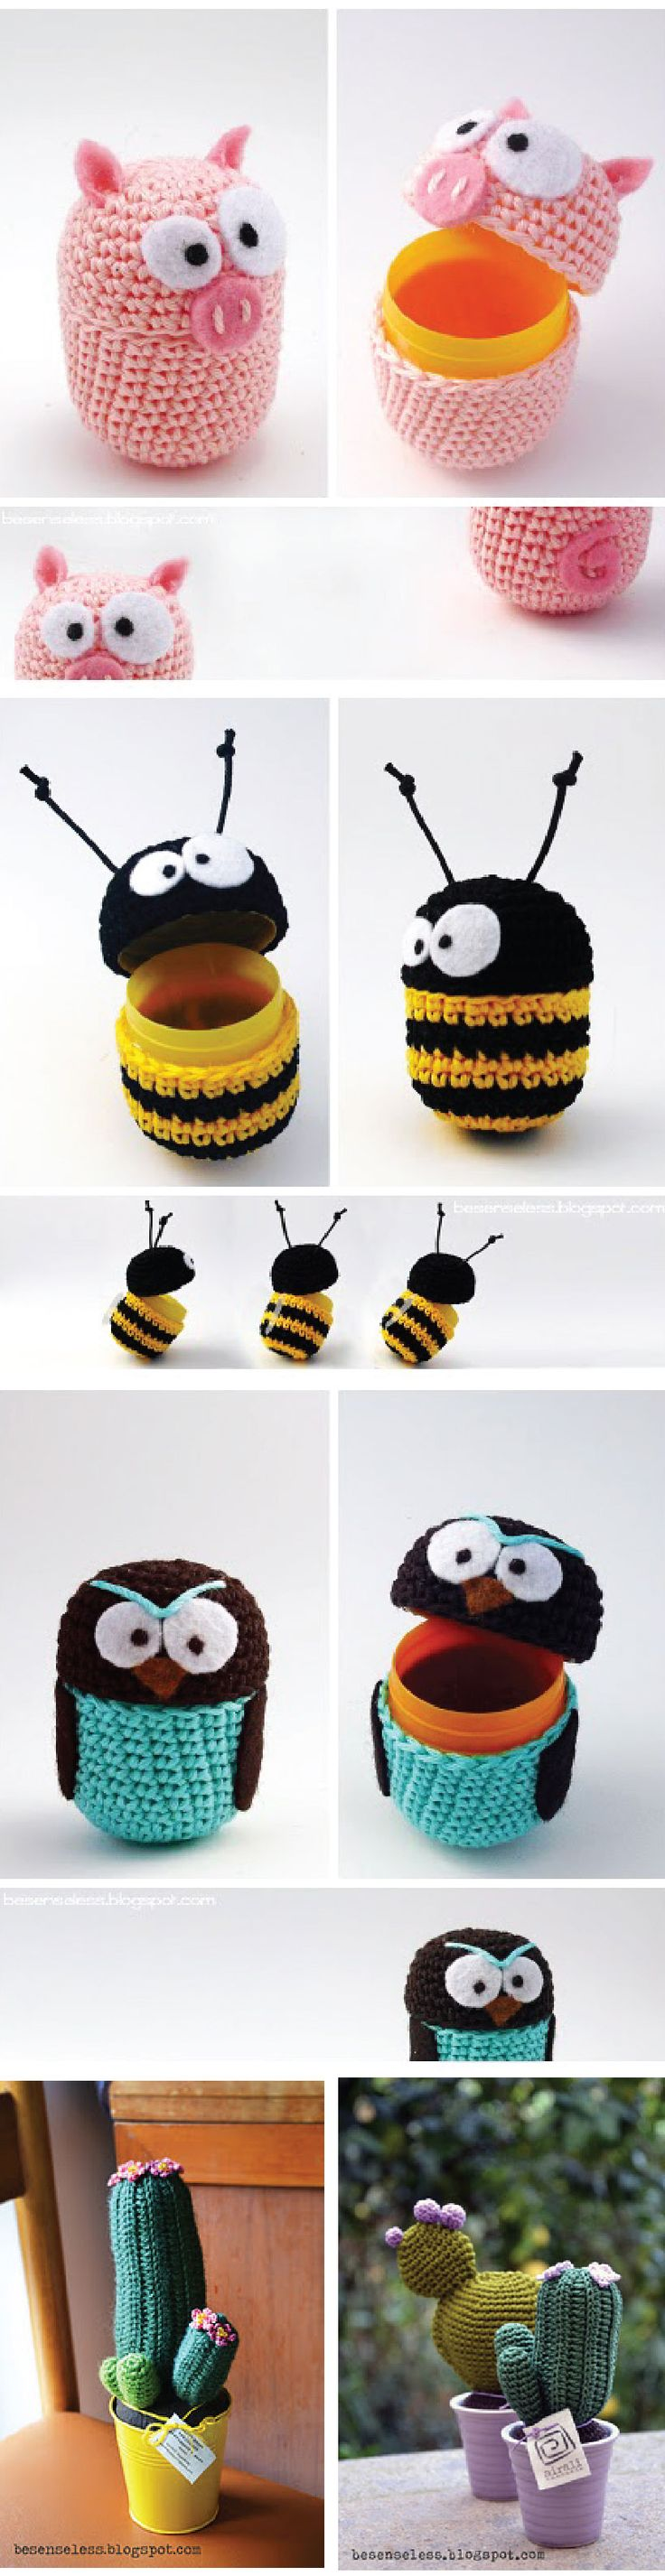 AMAZINGLY CUTE . https://besenseless.blogspot.com/2011/05/tutorial-ovetti-amigurumi.html Easter clipart ideas